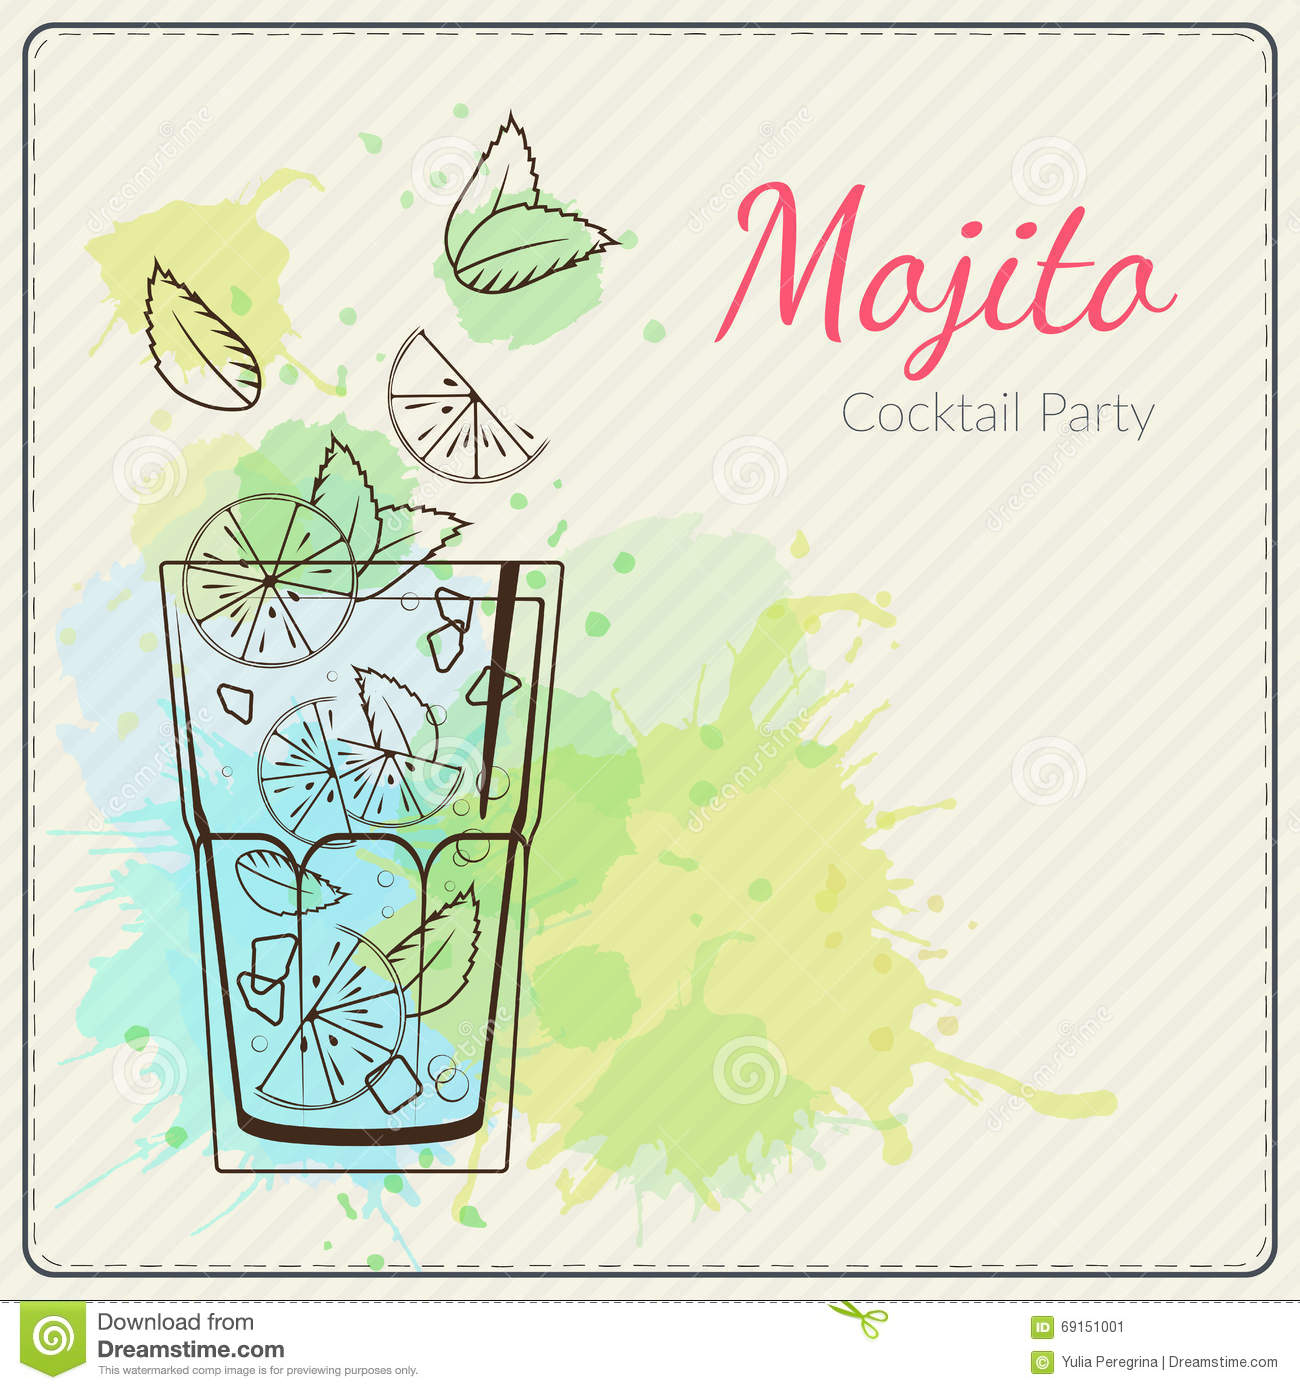 Cocktail Liste Mojito Illustration Tirée Par La Main De Vecteur De Cocktail Fond